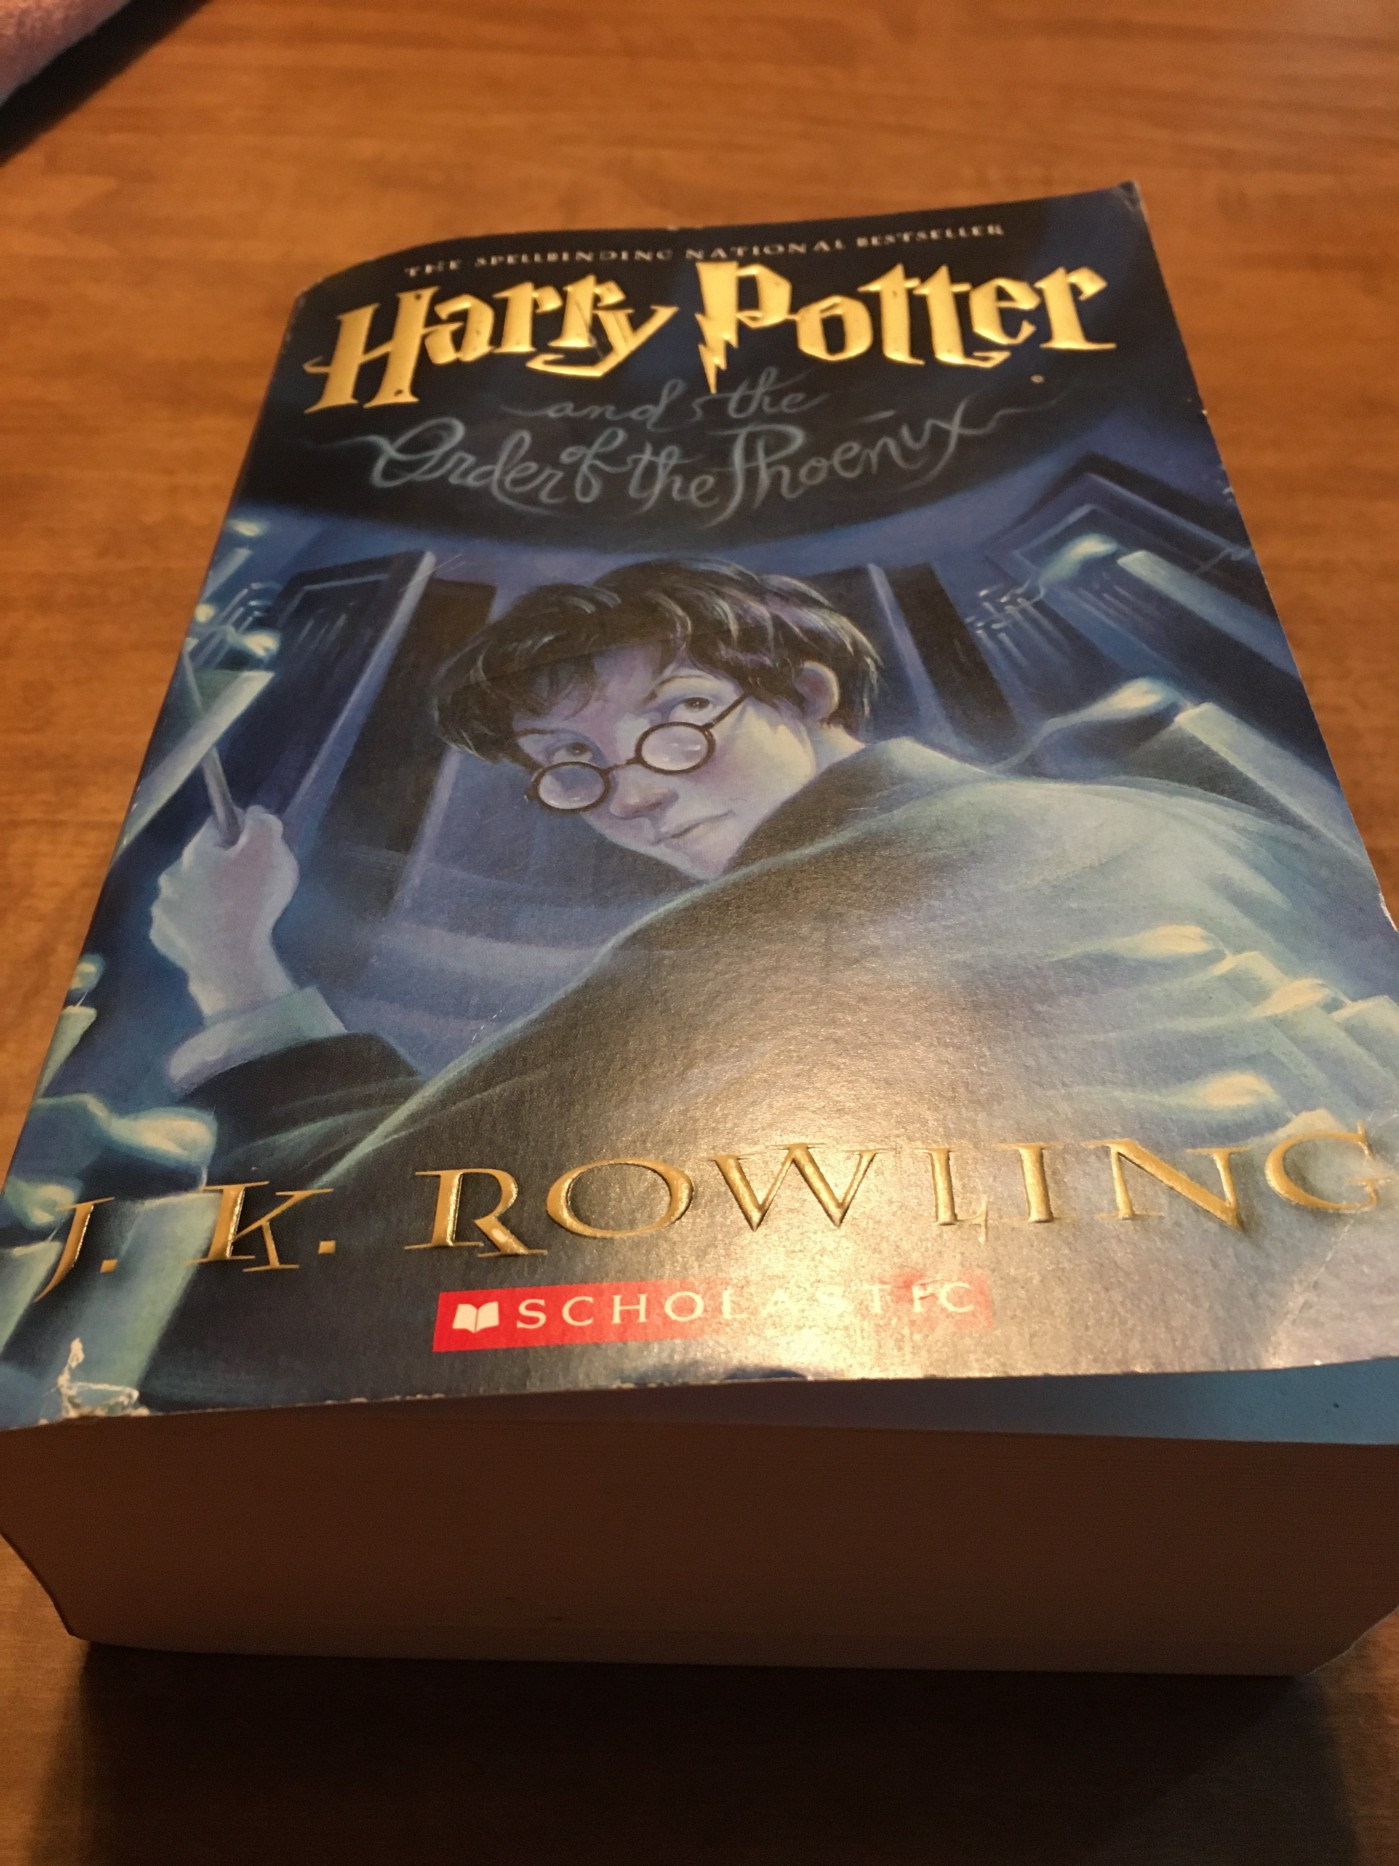 A paperback copy of Harry Potter and the Order of the Phoenix